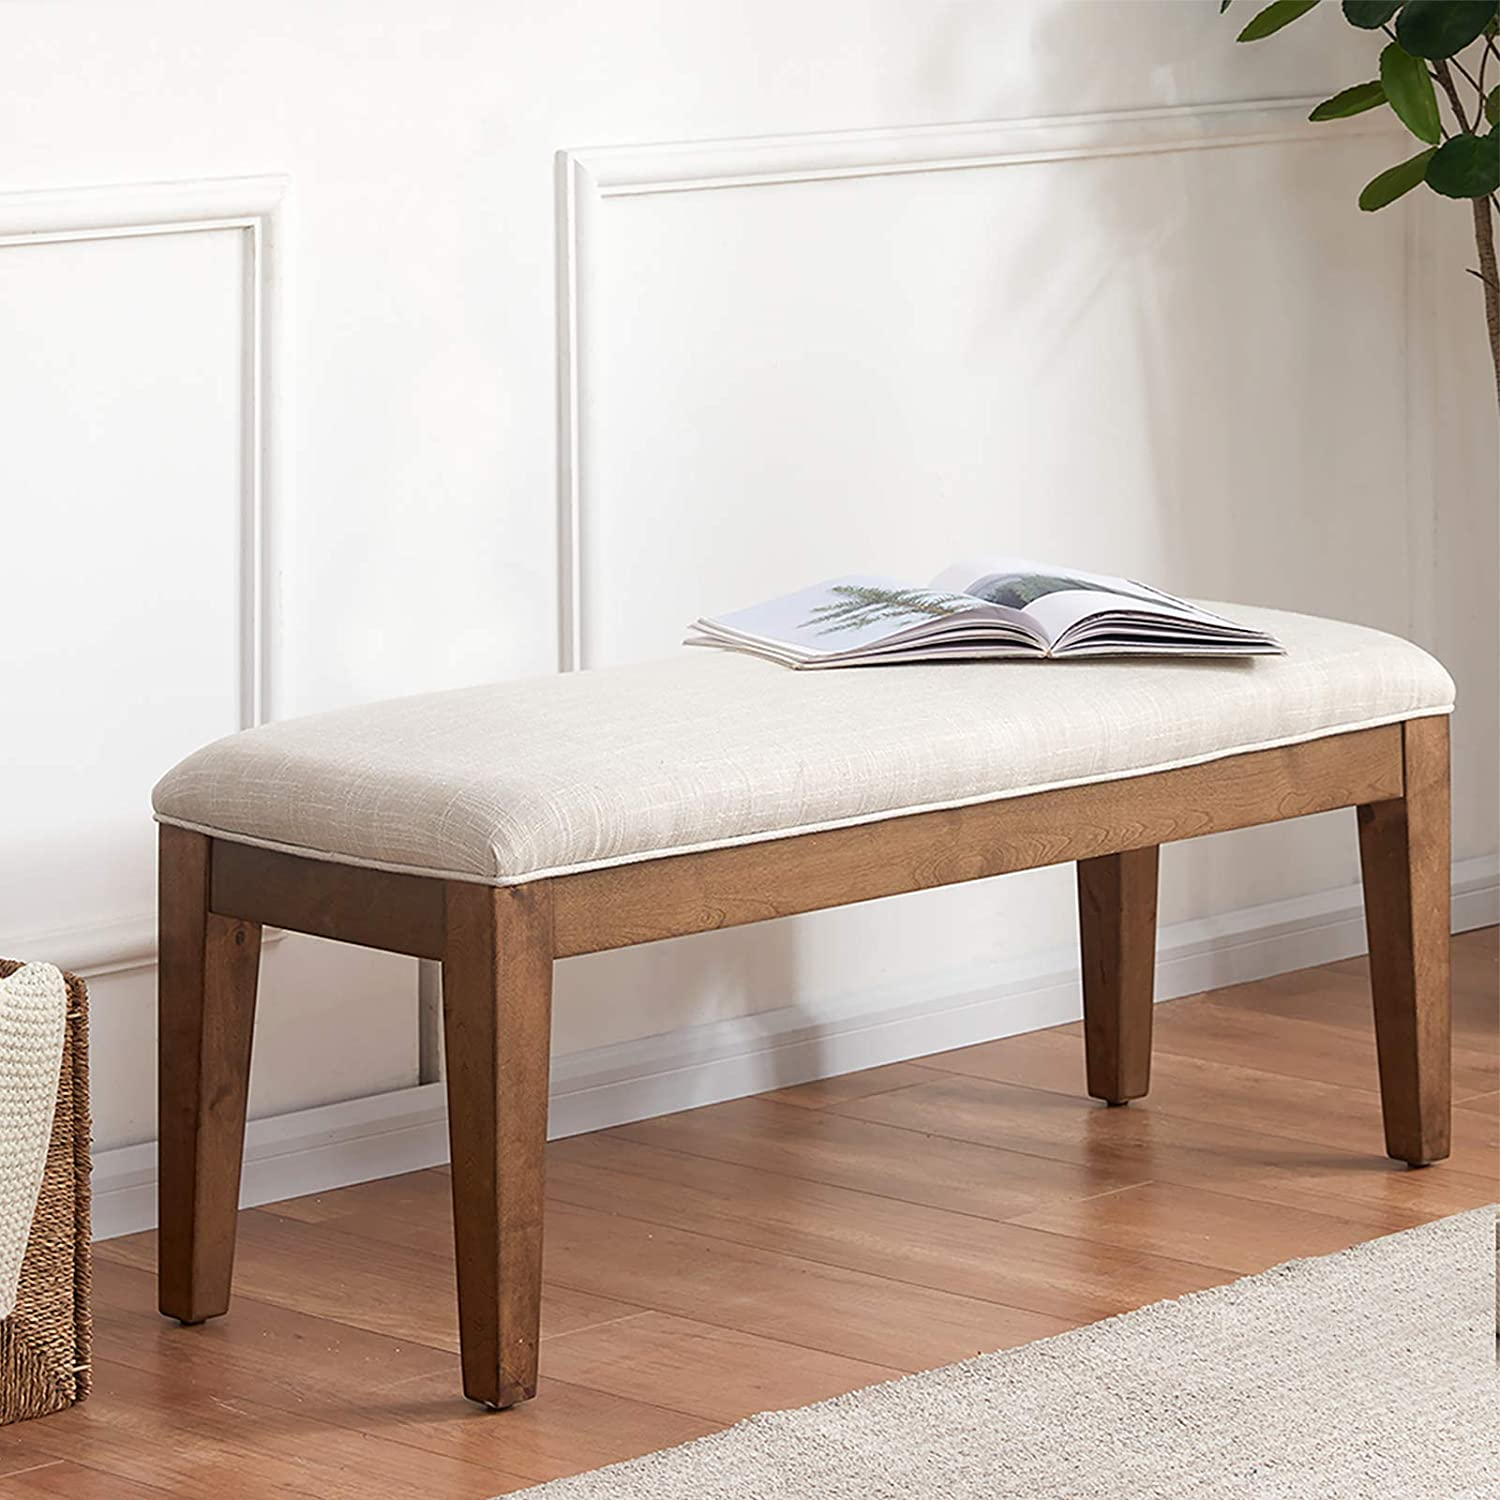 HUIMO Upholstered Entryway Bedroom Bench, Bench for End of Bed, Dining Bench with Padded Seat for Kitchen, Living Room, Fabric Solid Wood Indoor Bench (Beige)